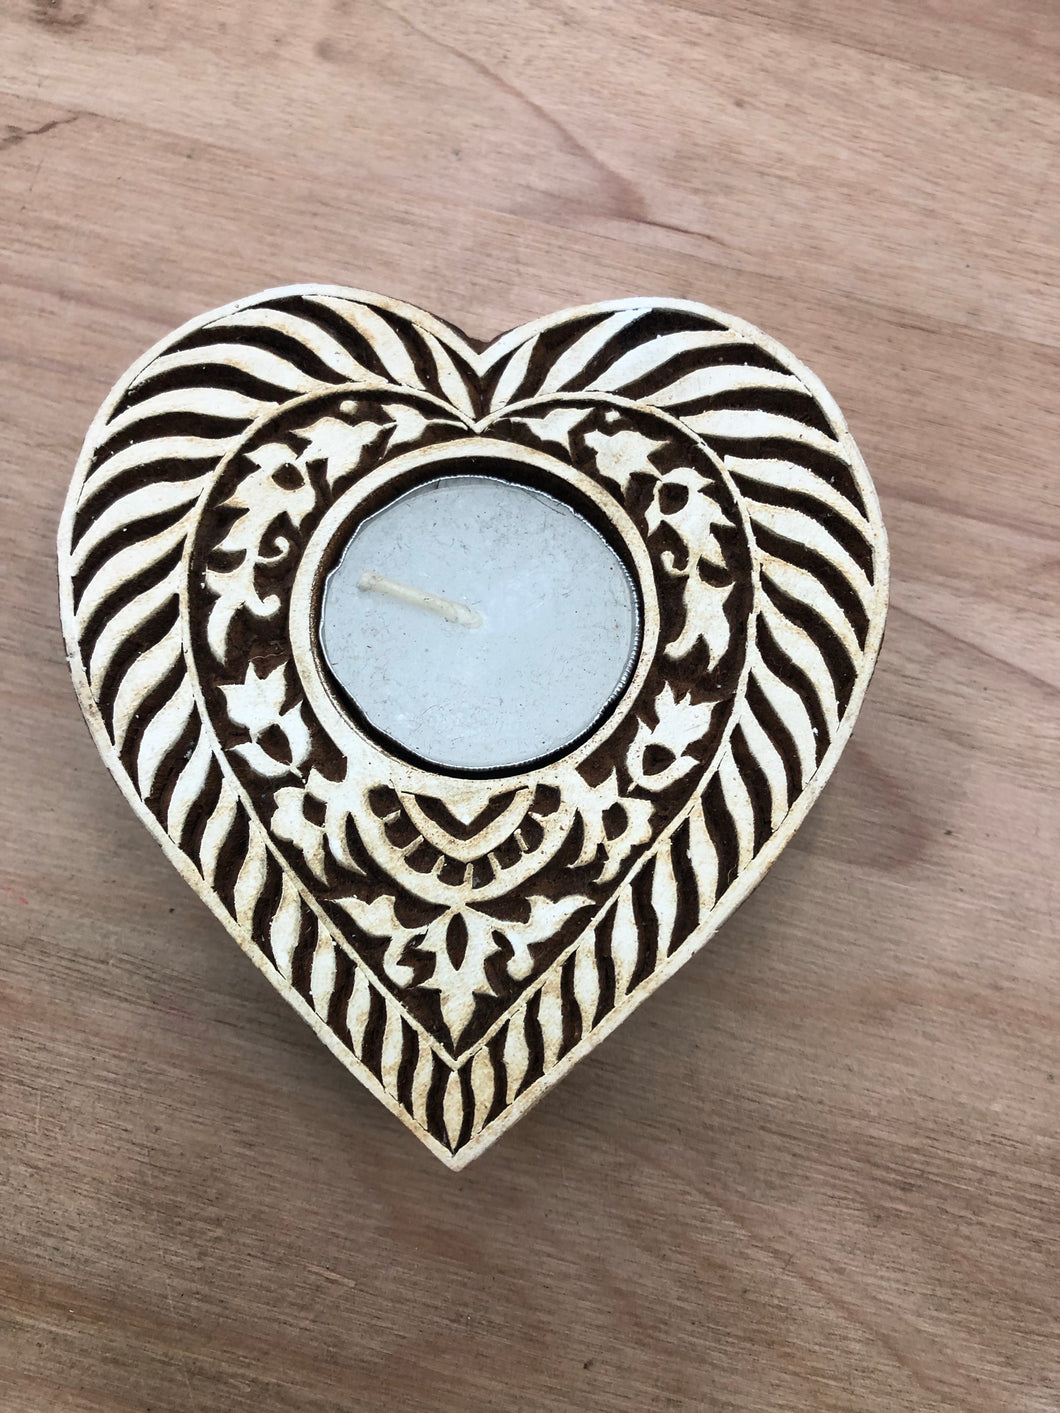 Carved Heart Tealight